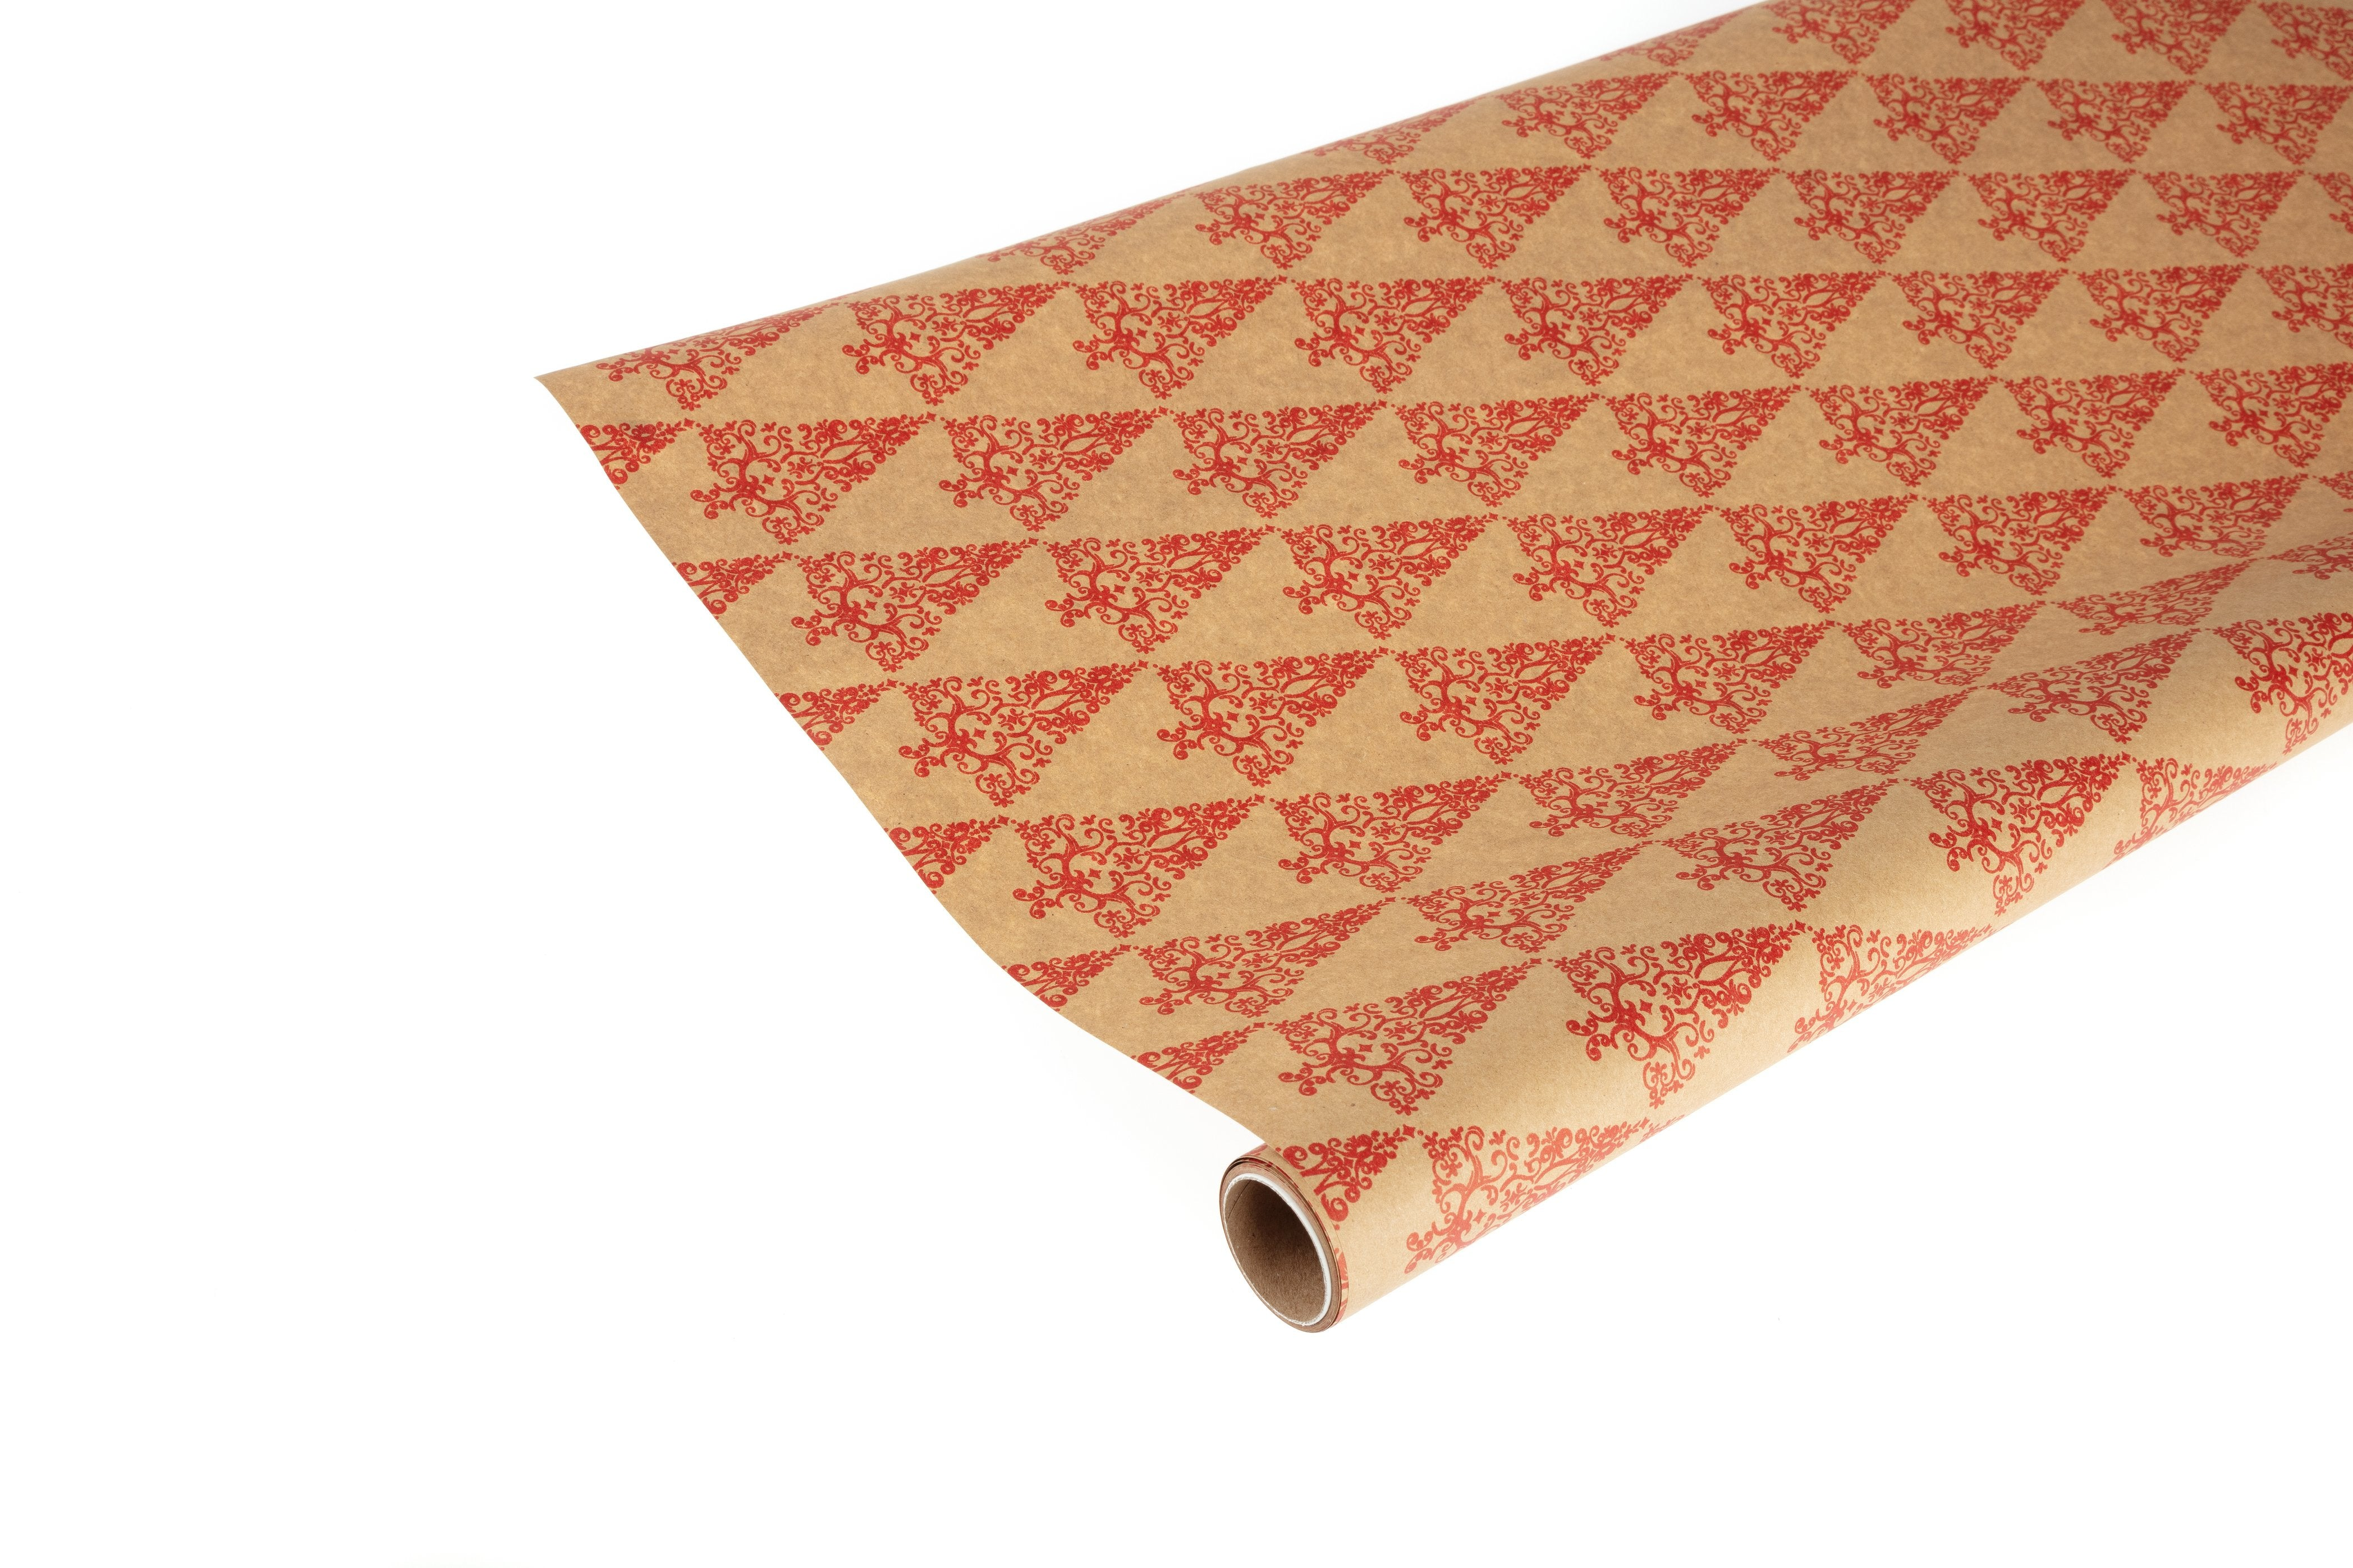 3M Roll Recyclable Brown Kraft Paper with Red Christmas Trees